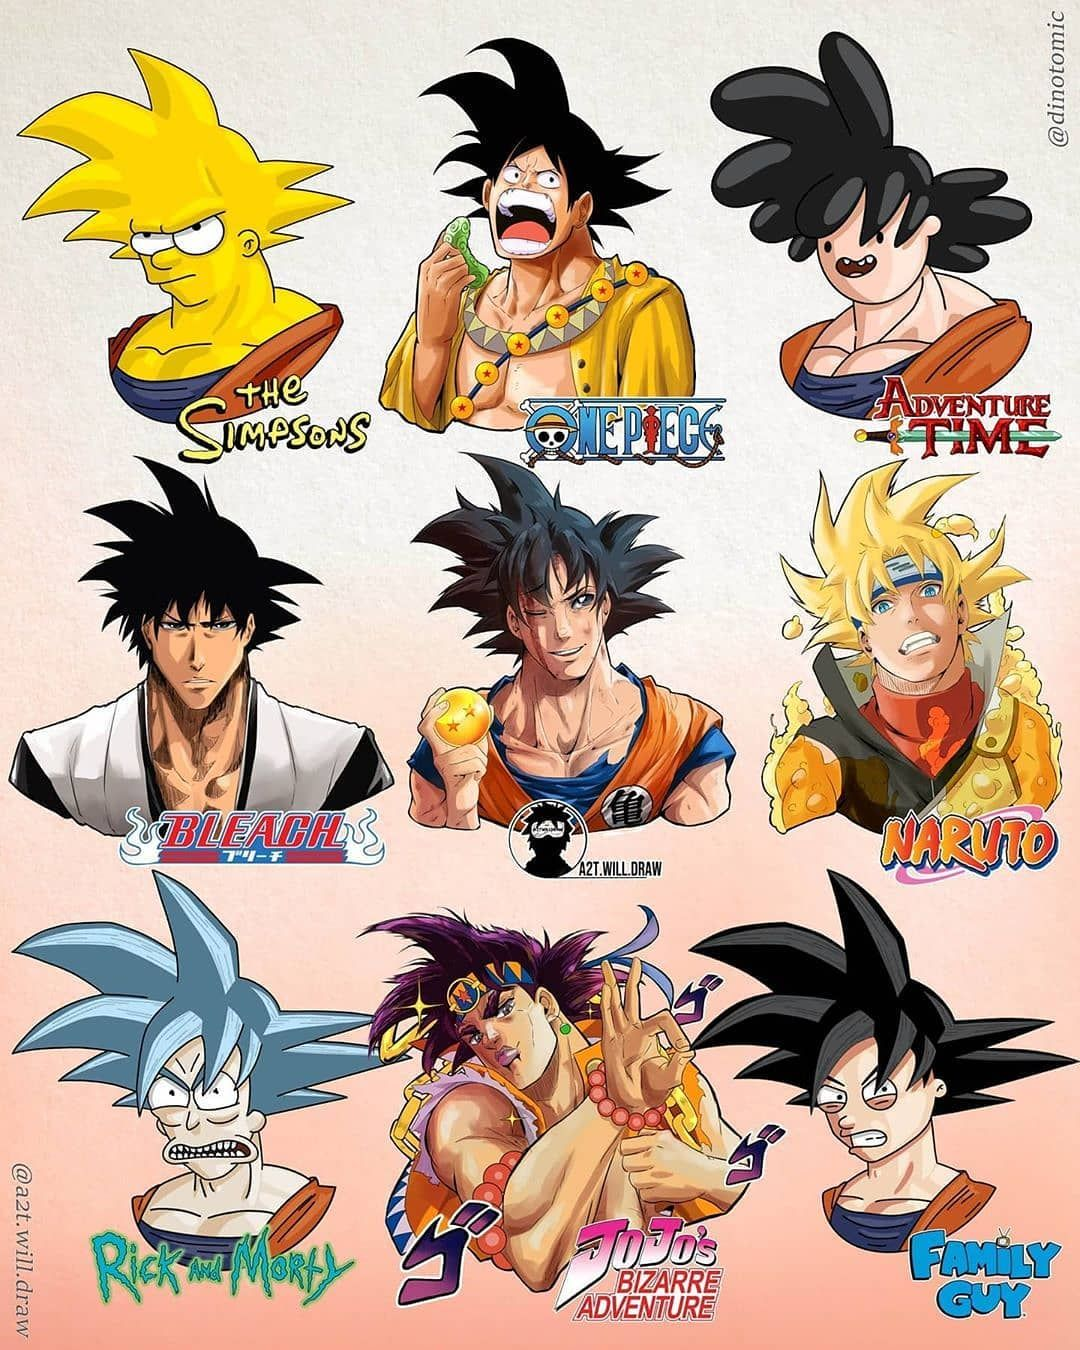 Dragon Ball Legends On Instagram Goku Drawn On Different Anime Styles Which One Looks Better For You In 2020 Anime Dragon Ball Super Anime Style Anime